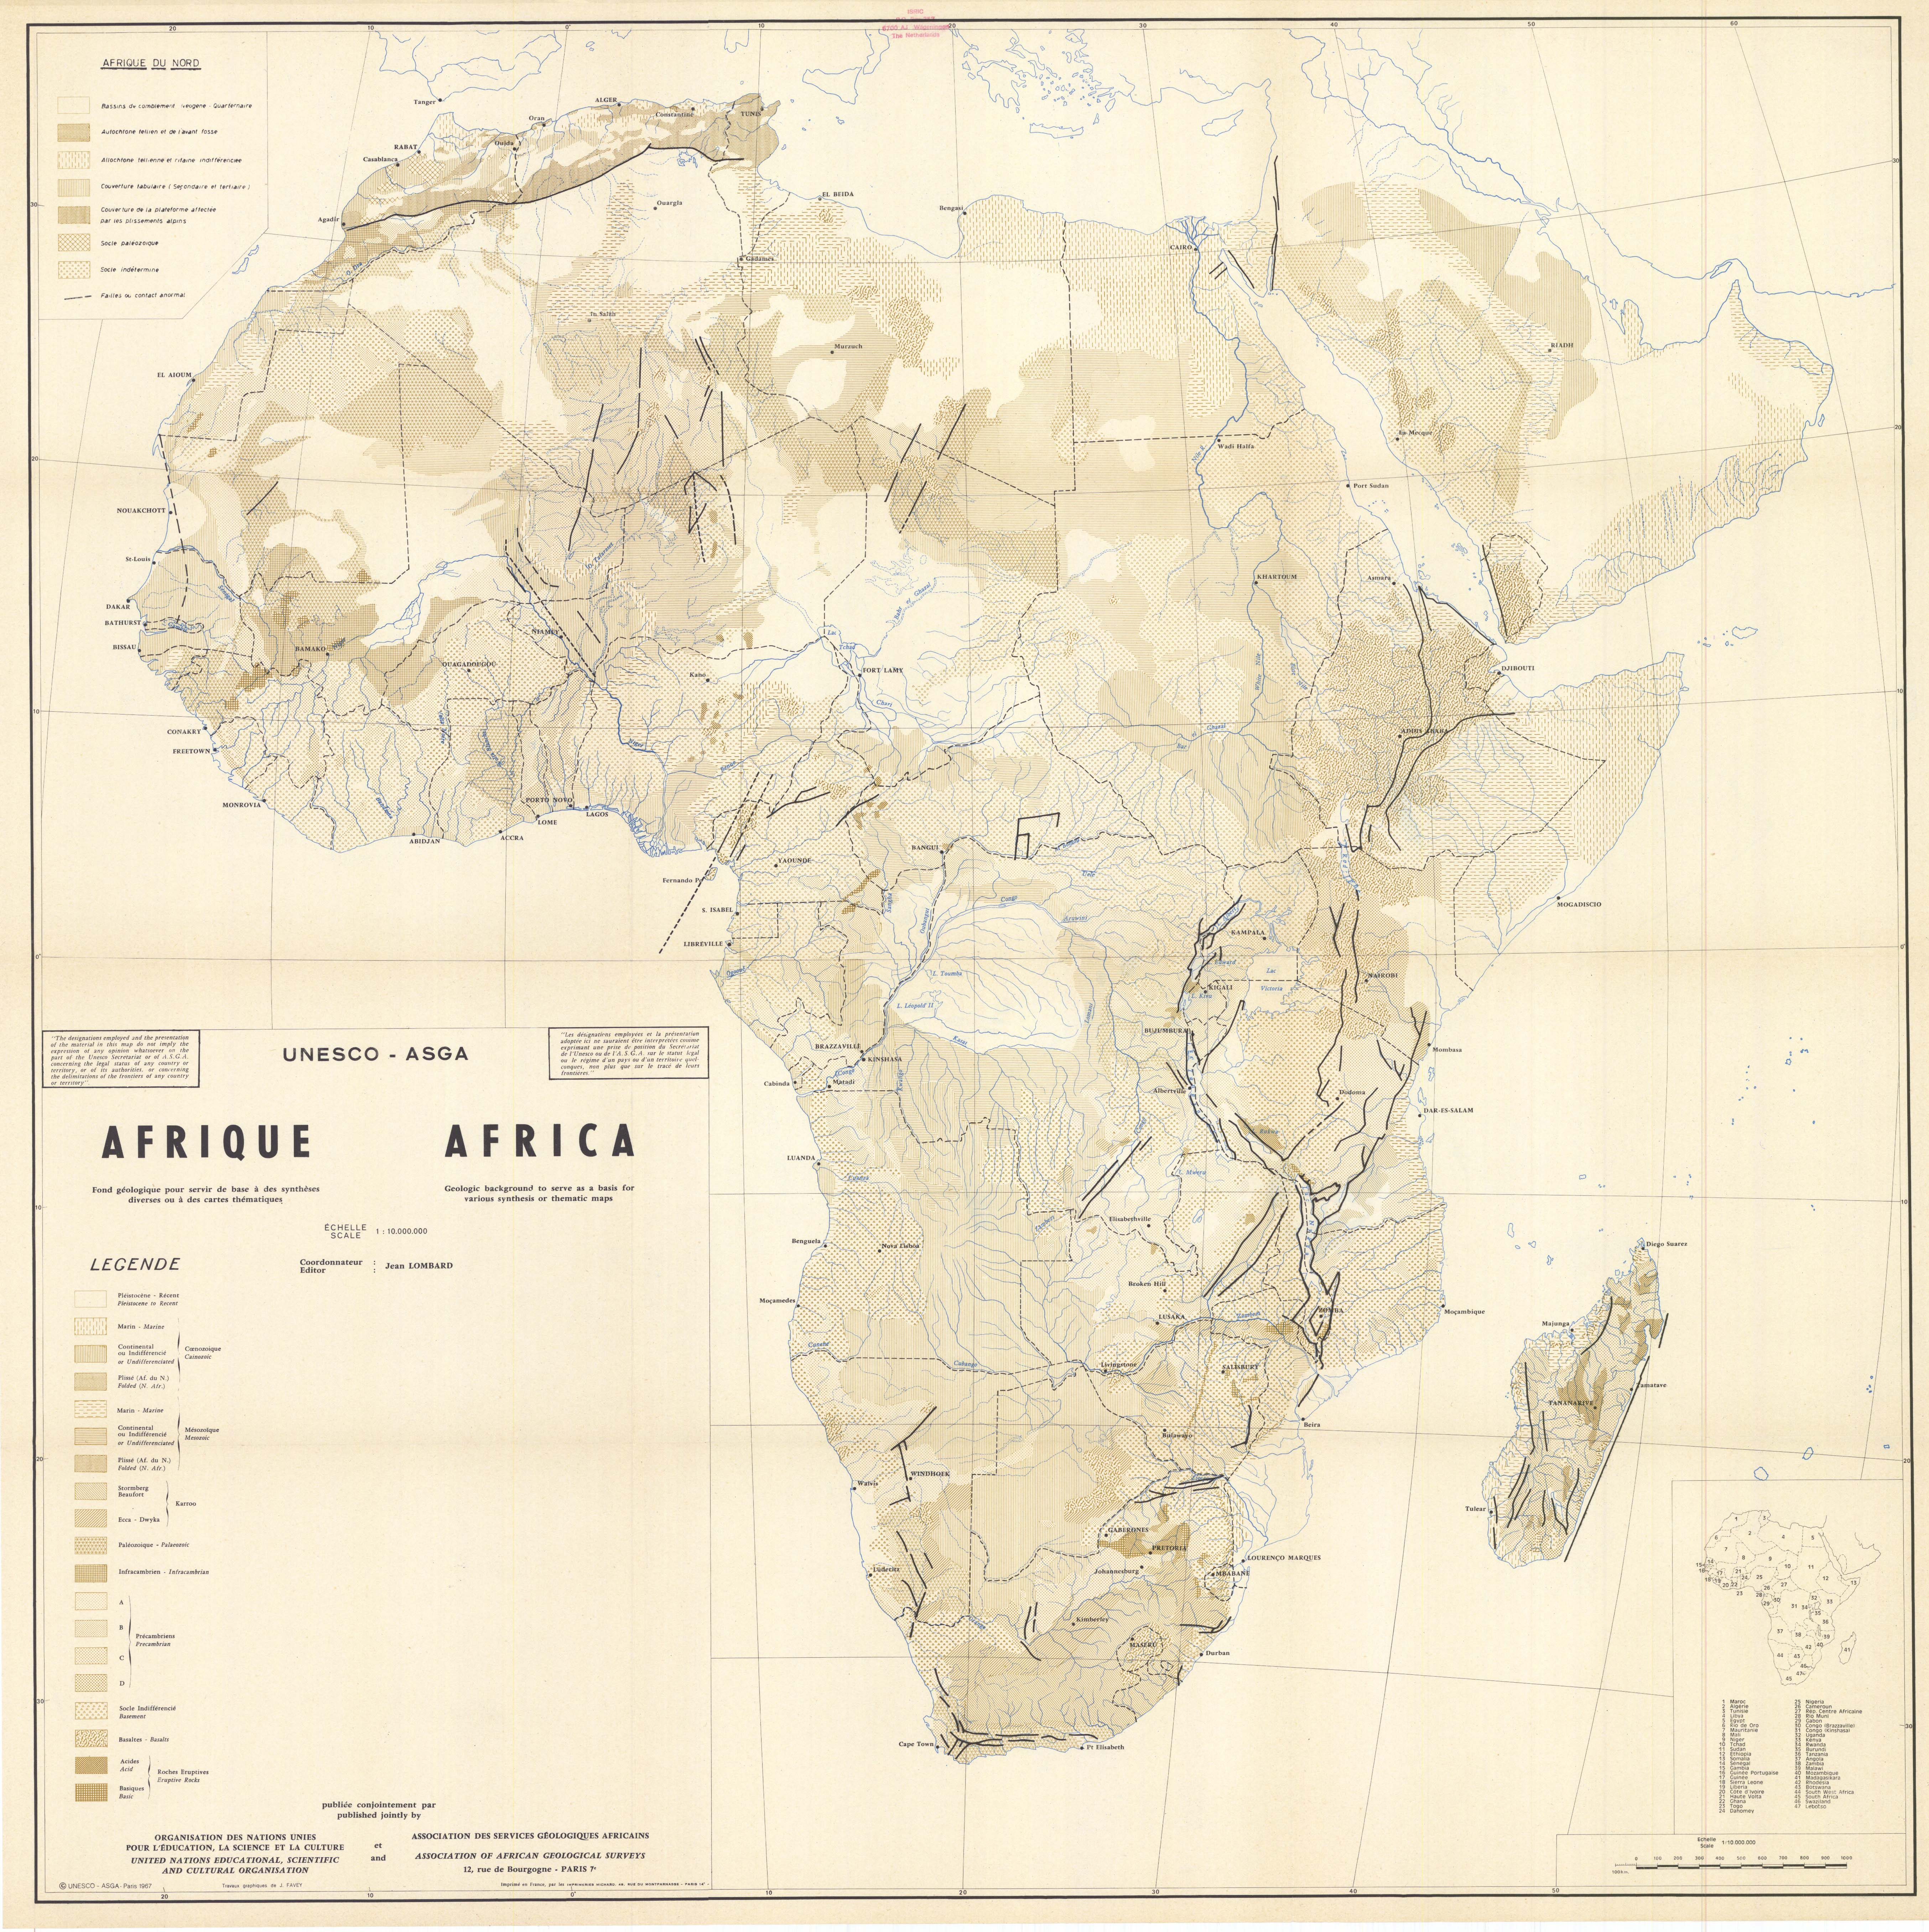 Africa geological map 1967